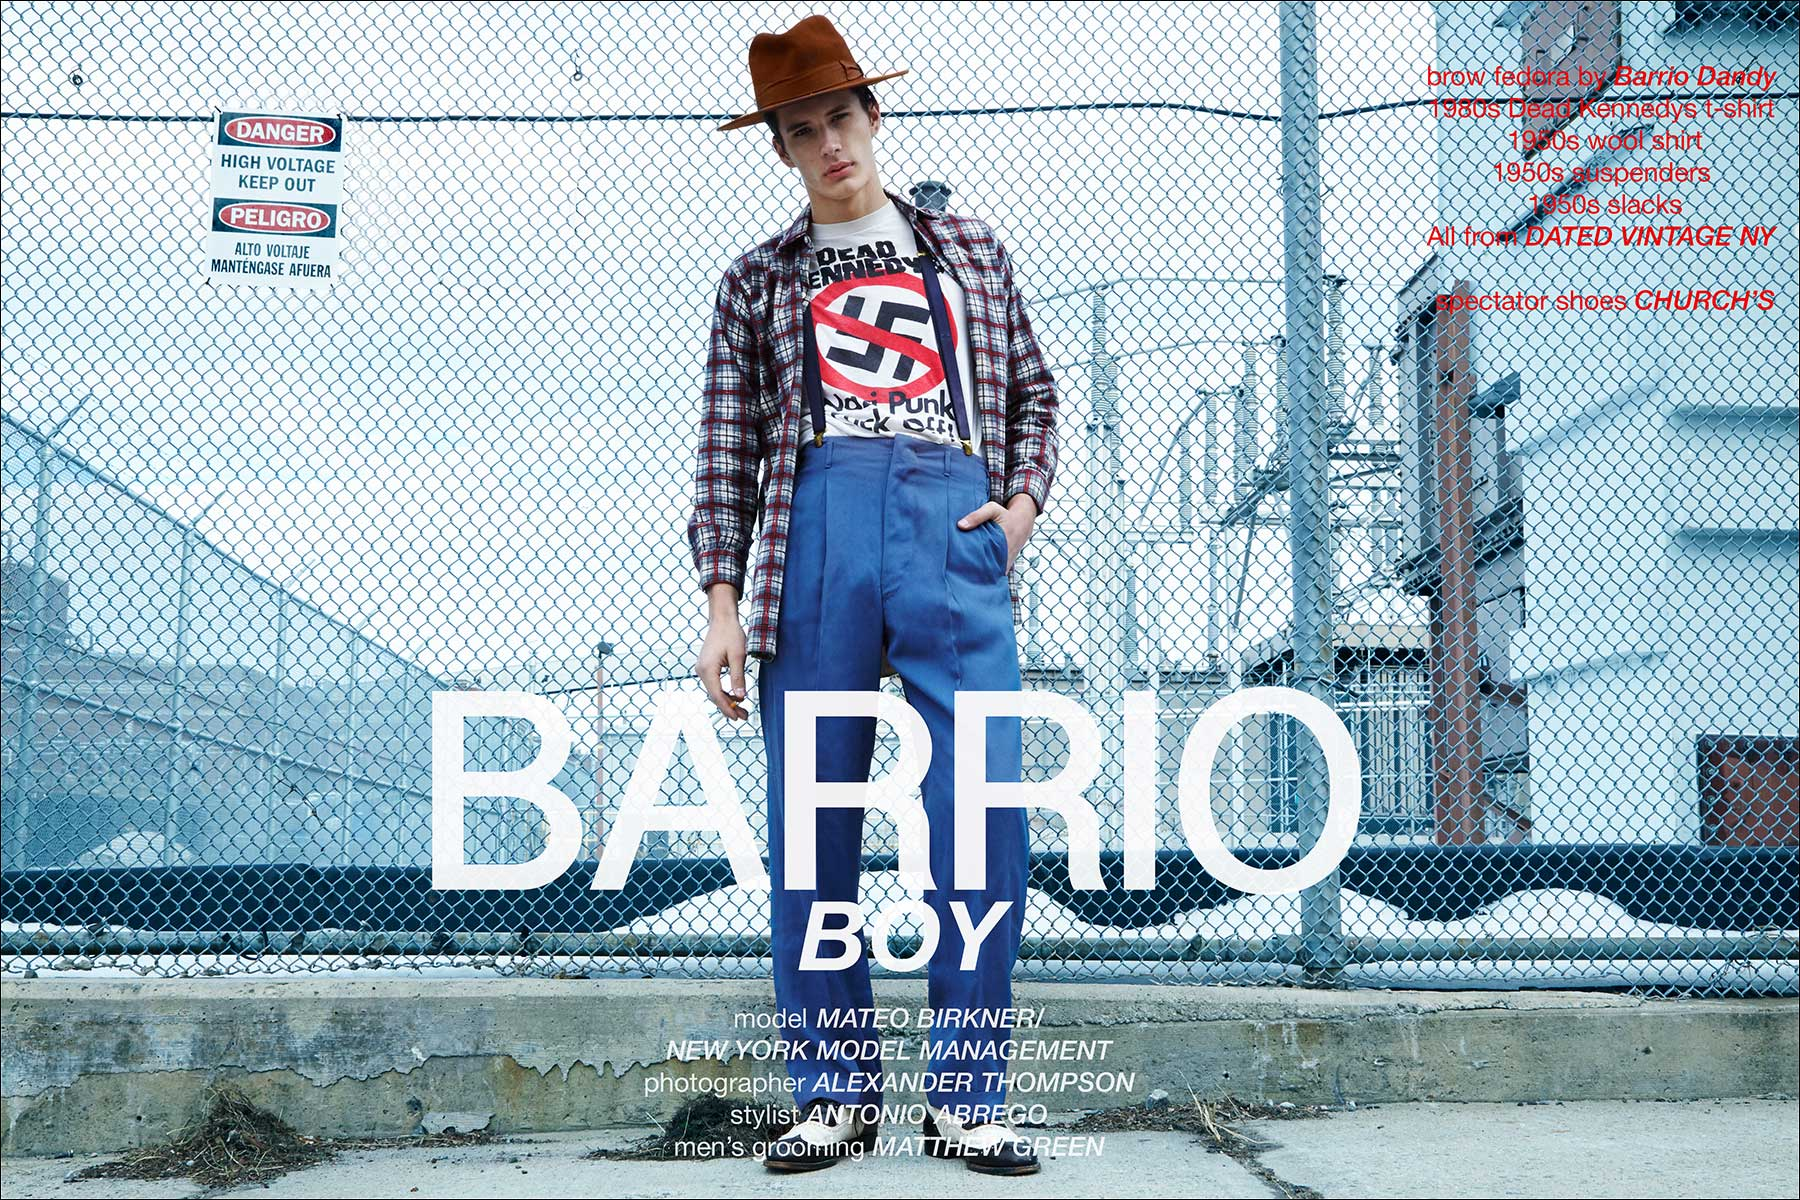 Barrio Boy, starring model Mateo Birkner from New York Model Management. Photographed by Alexander Thompson, with menswear styling by Antonio Abrego. Ponyboy magazine New York.